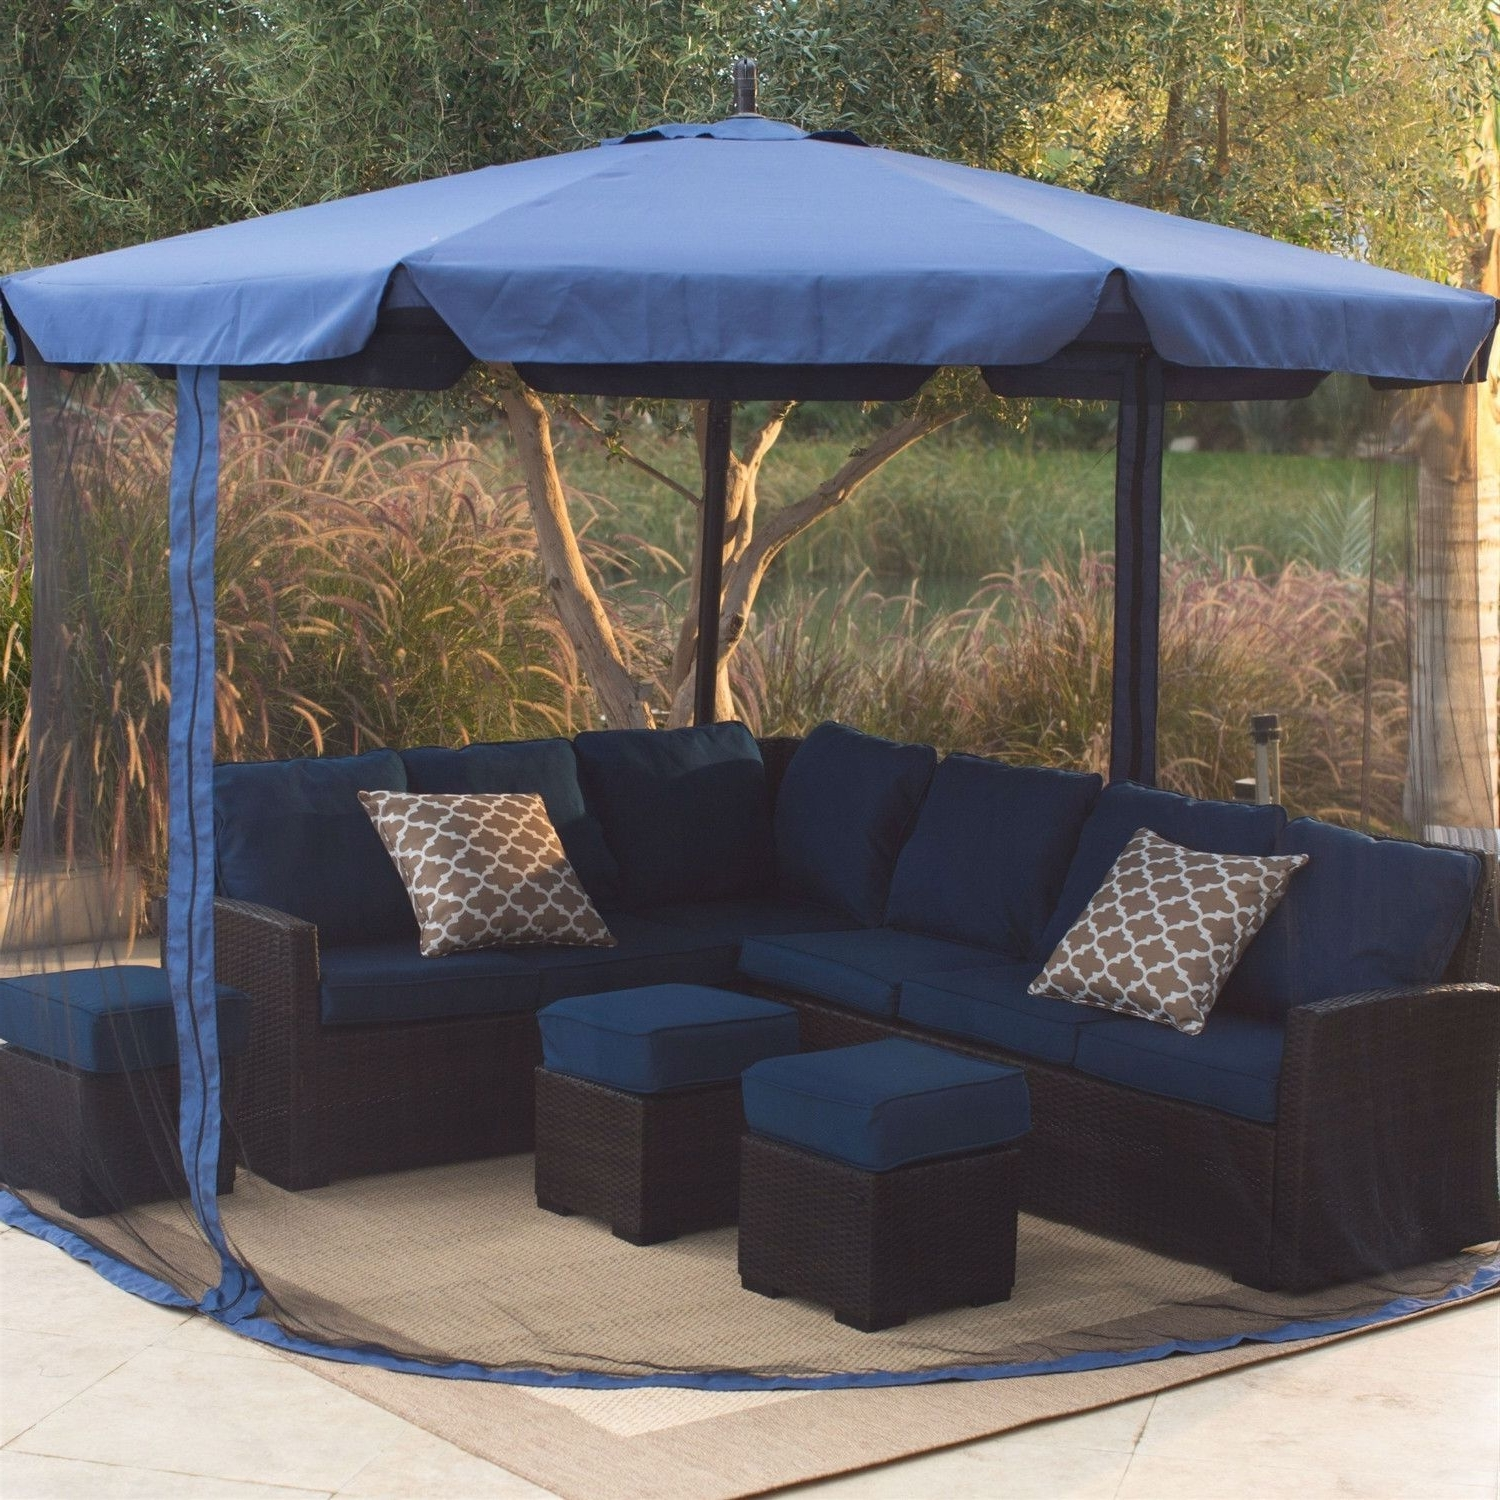 2019 11 Ft Cantilever Crank Lift Patio Umbrella In Blue With Removable Throughout 11 Ft Patio Umbrellas (Gallery 10 of 20)